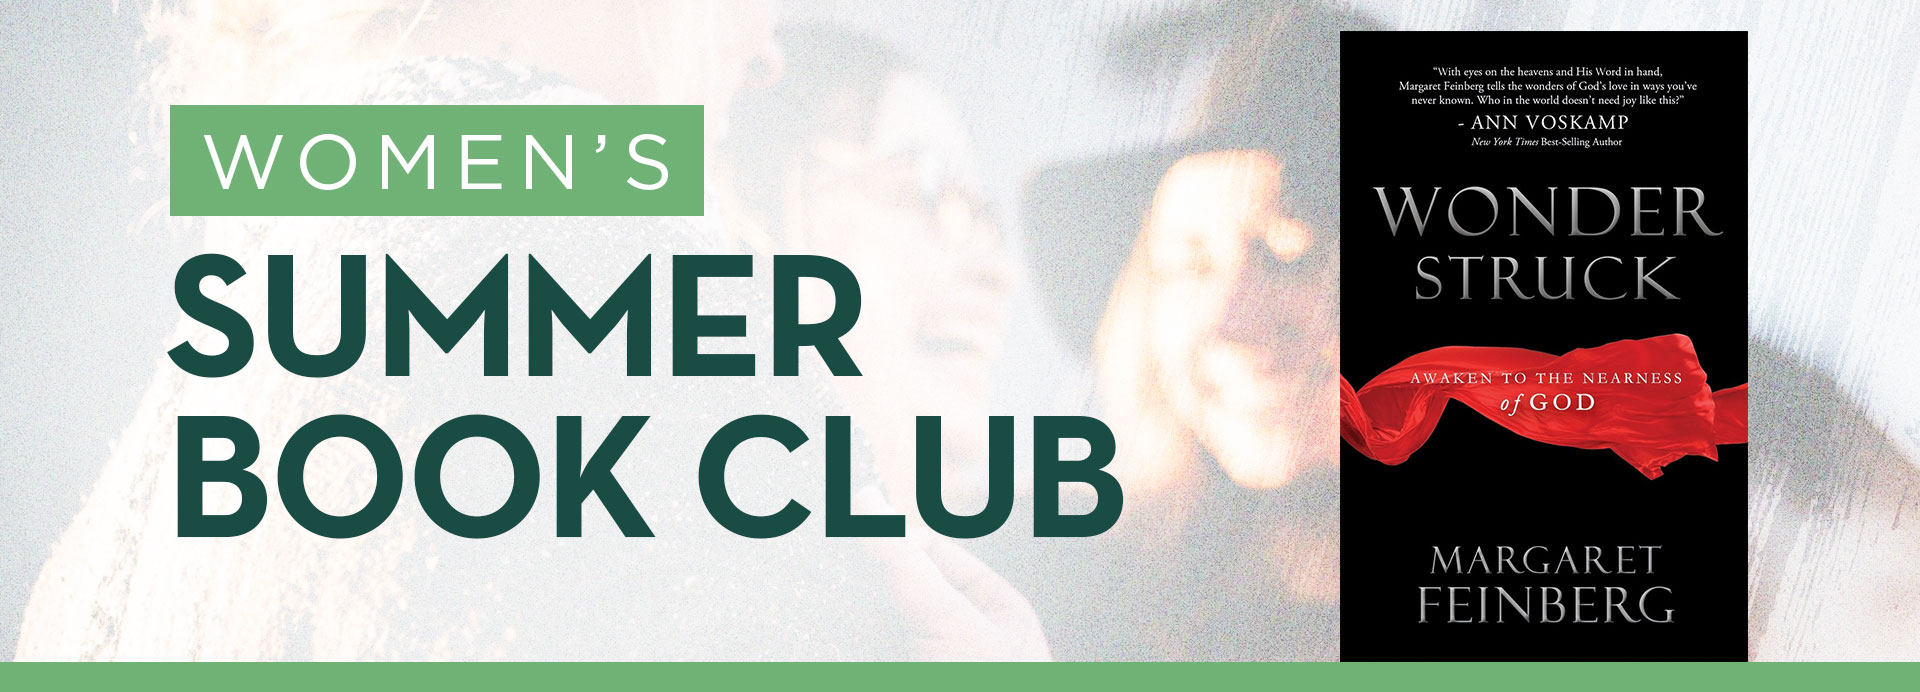 Summer-Book-Club_1920x692.jpg